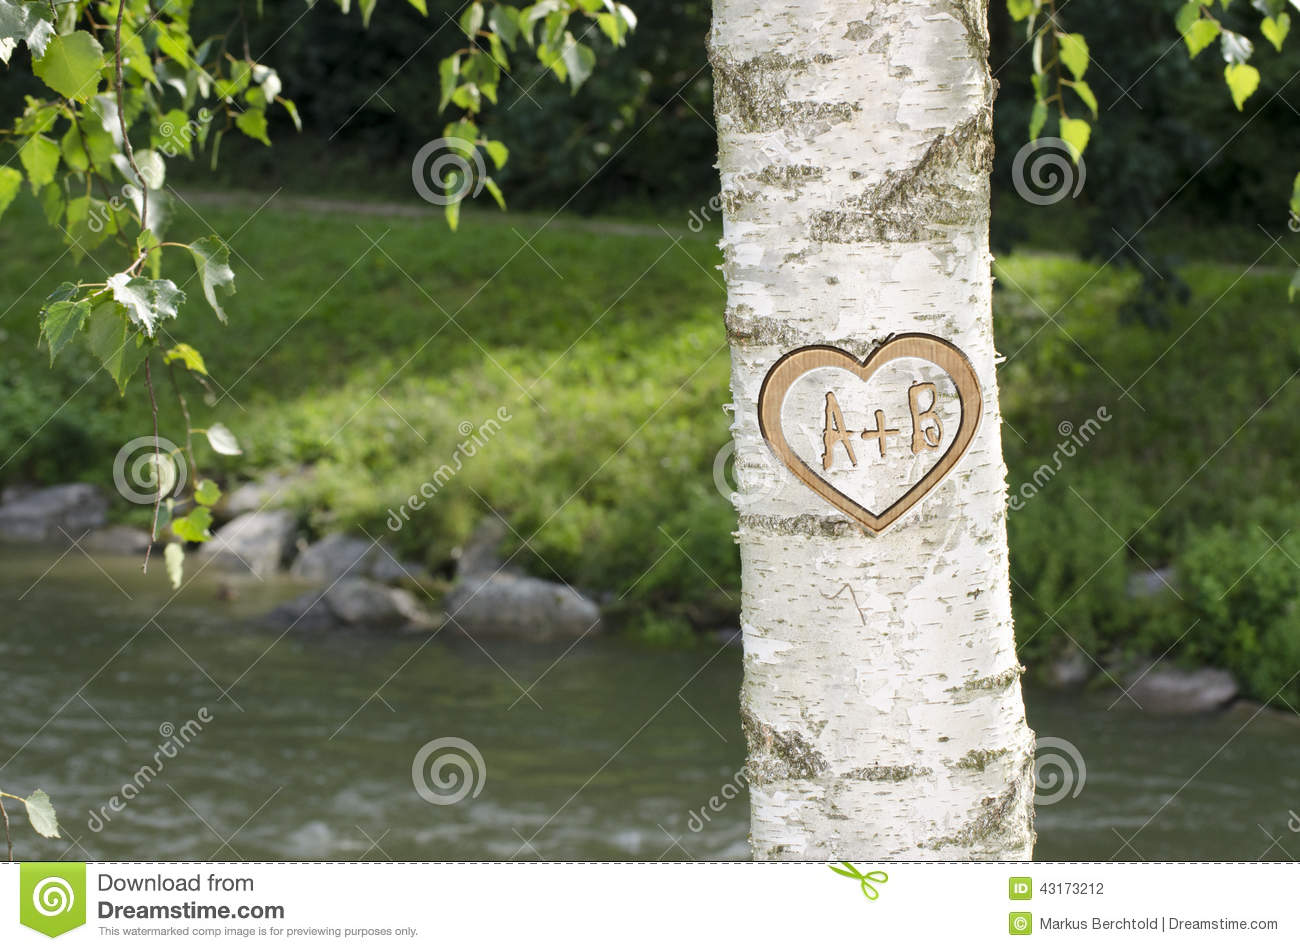 Tree With Heart And Letters A + B Carved In Stock Photo - Image ...